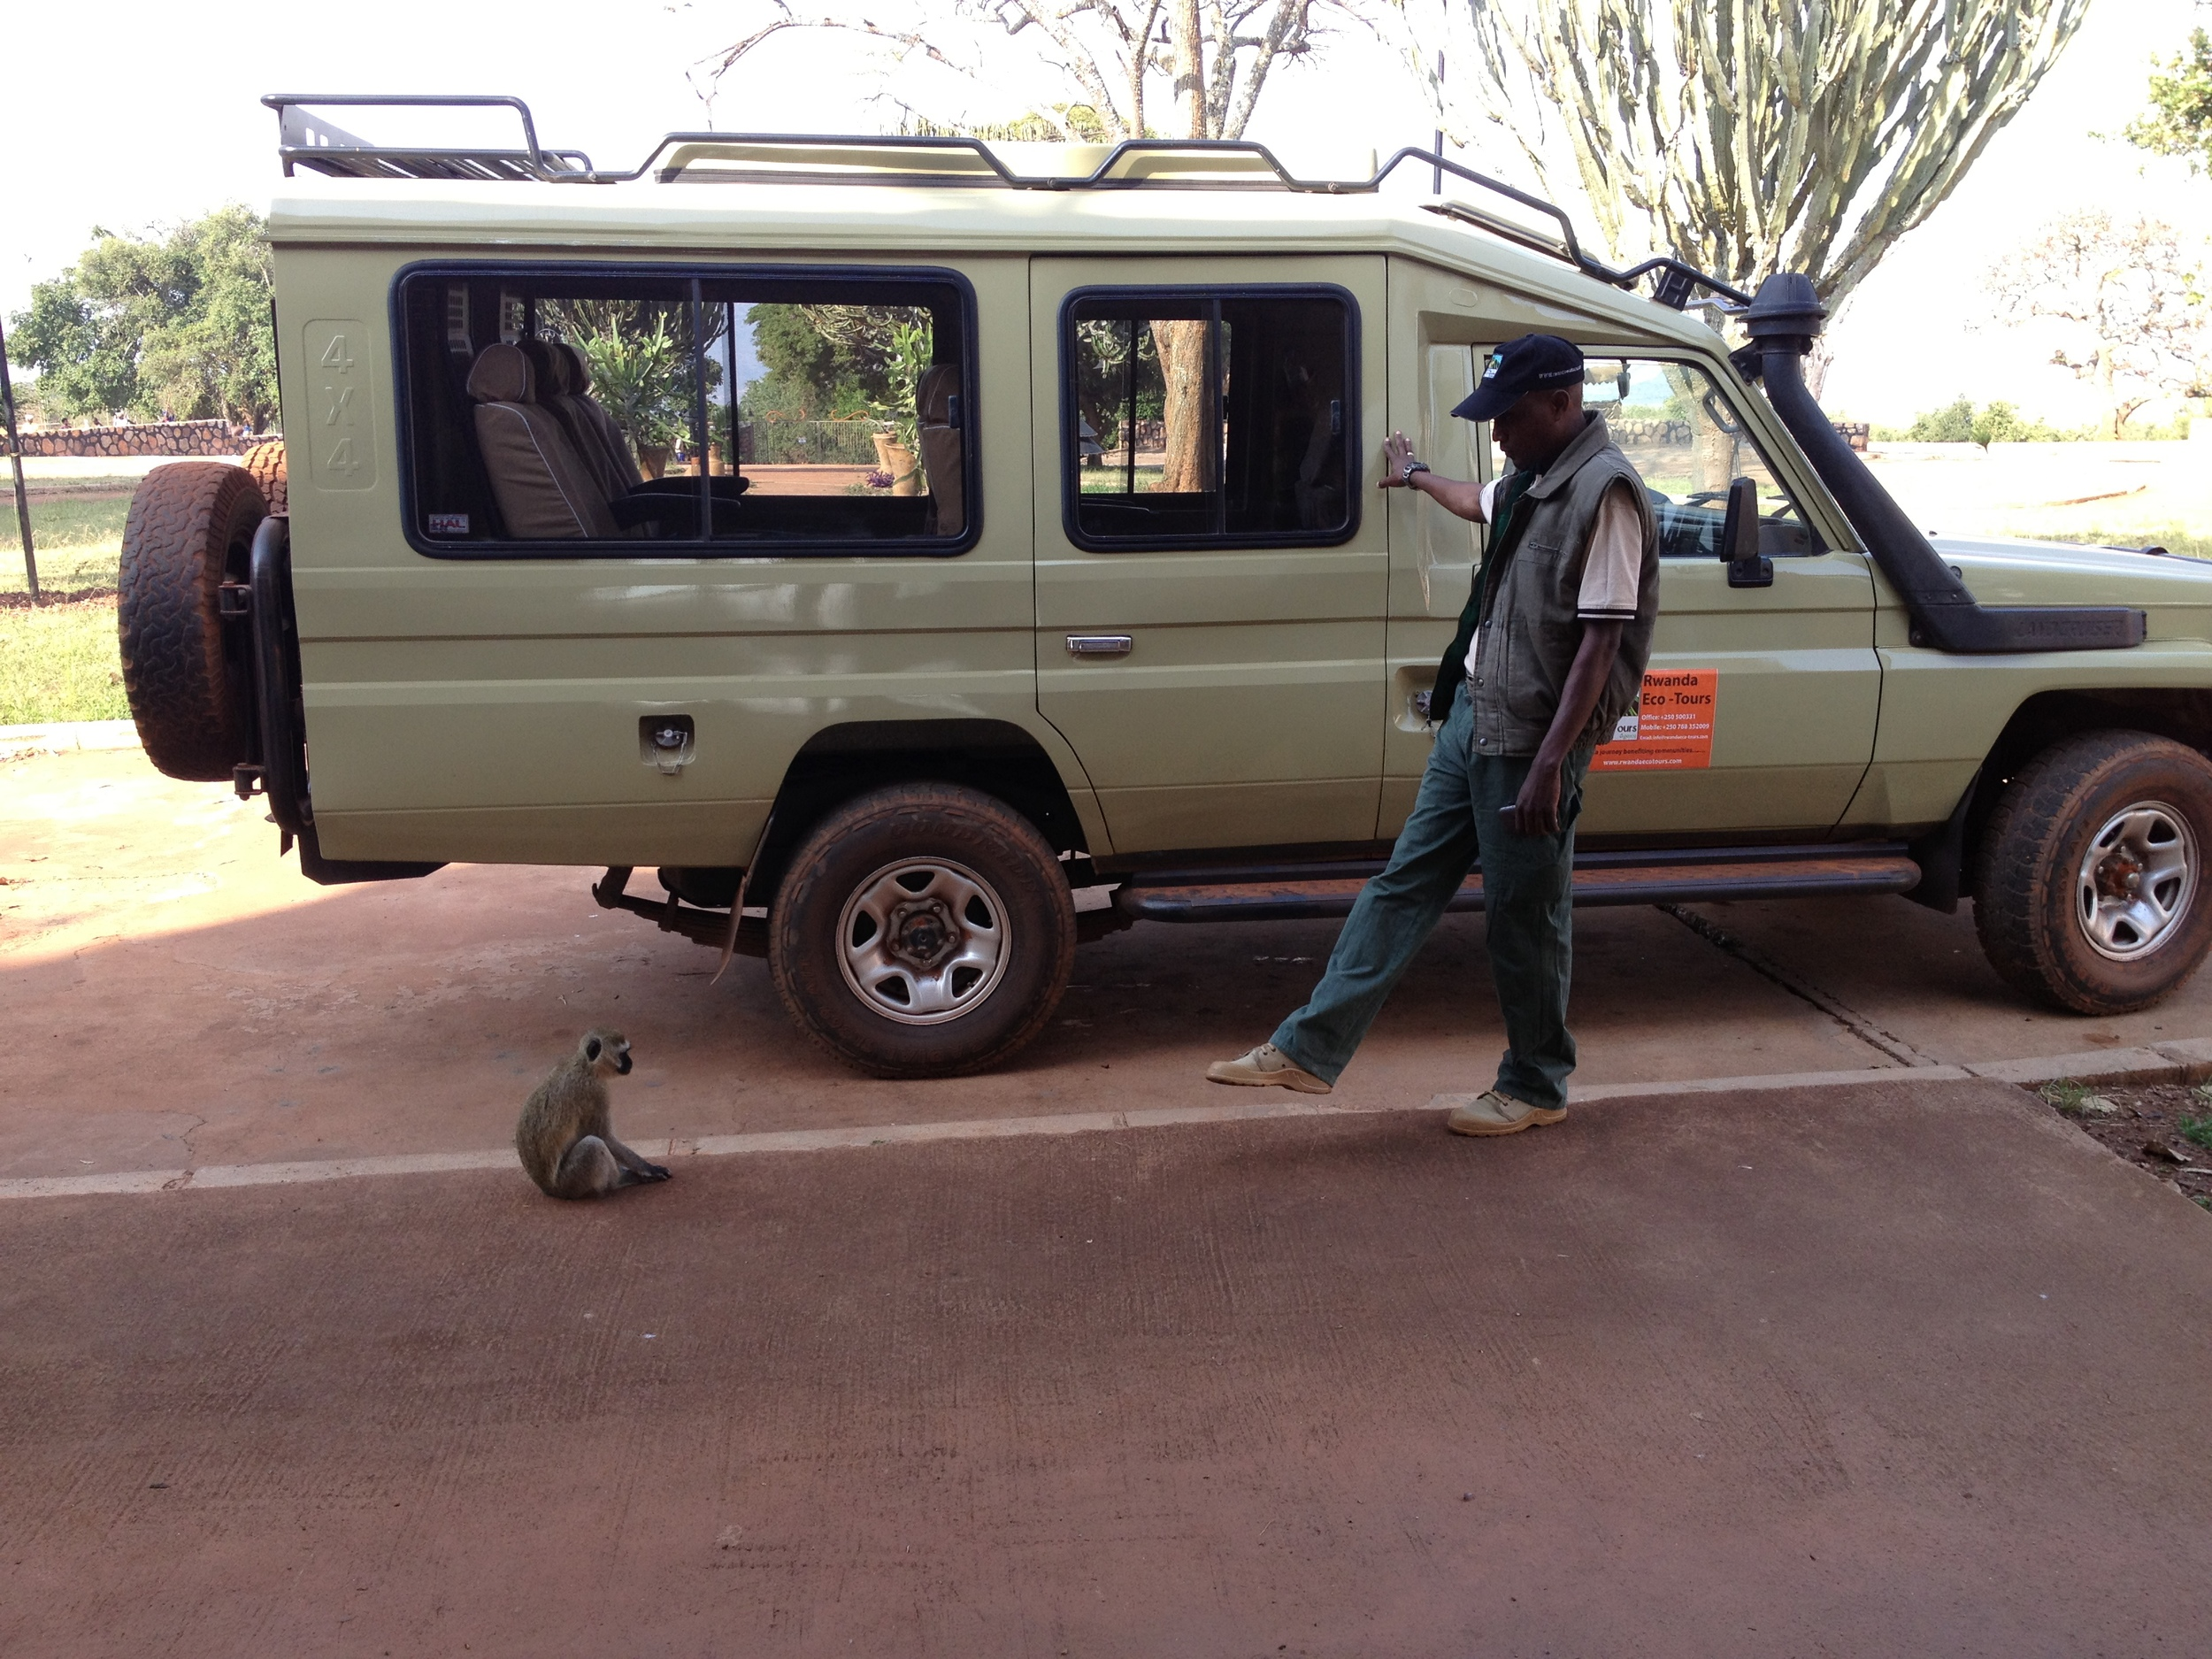 Our guide Yasin keeps unwanted company from joining us for our journey.